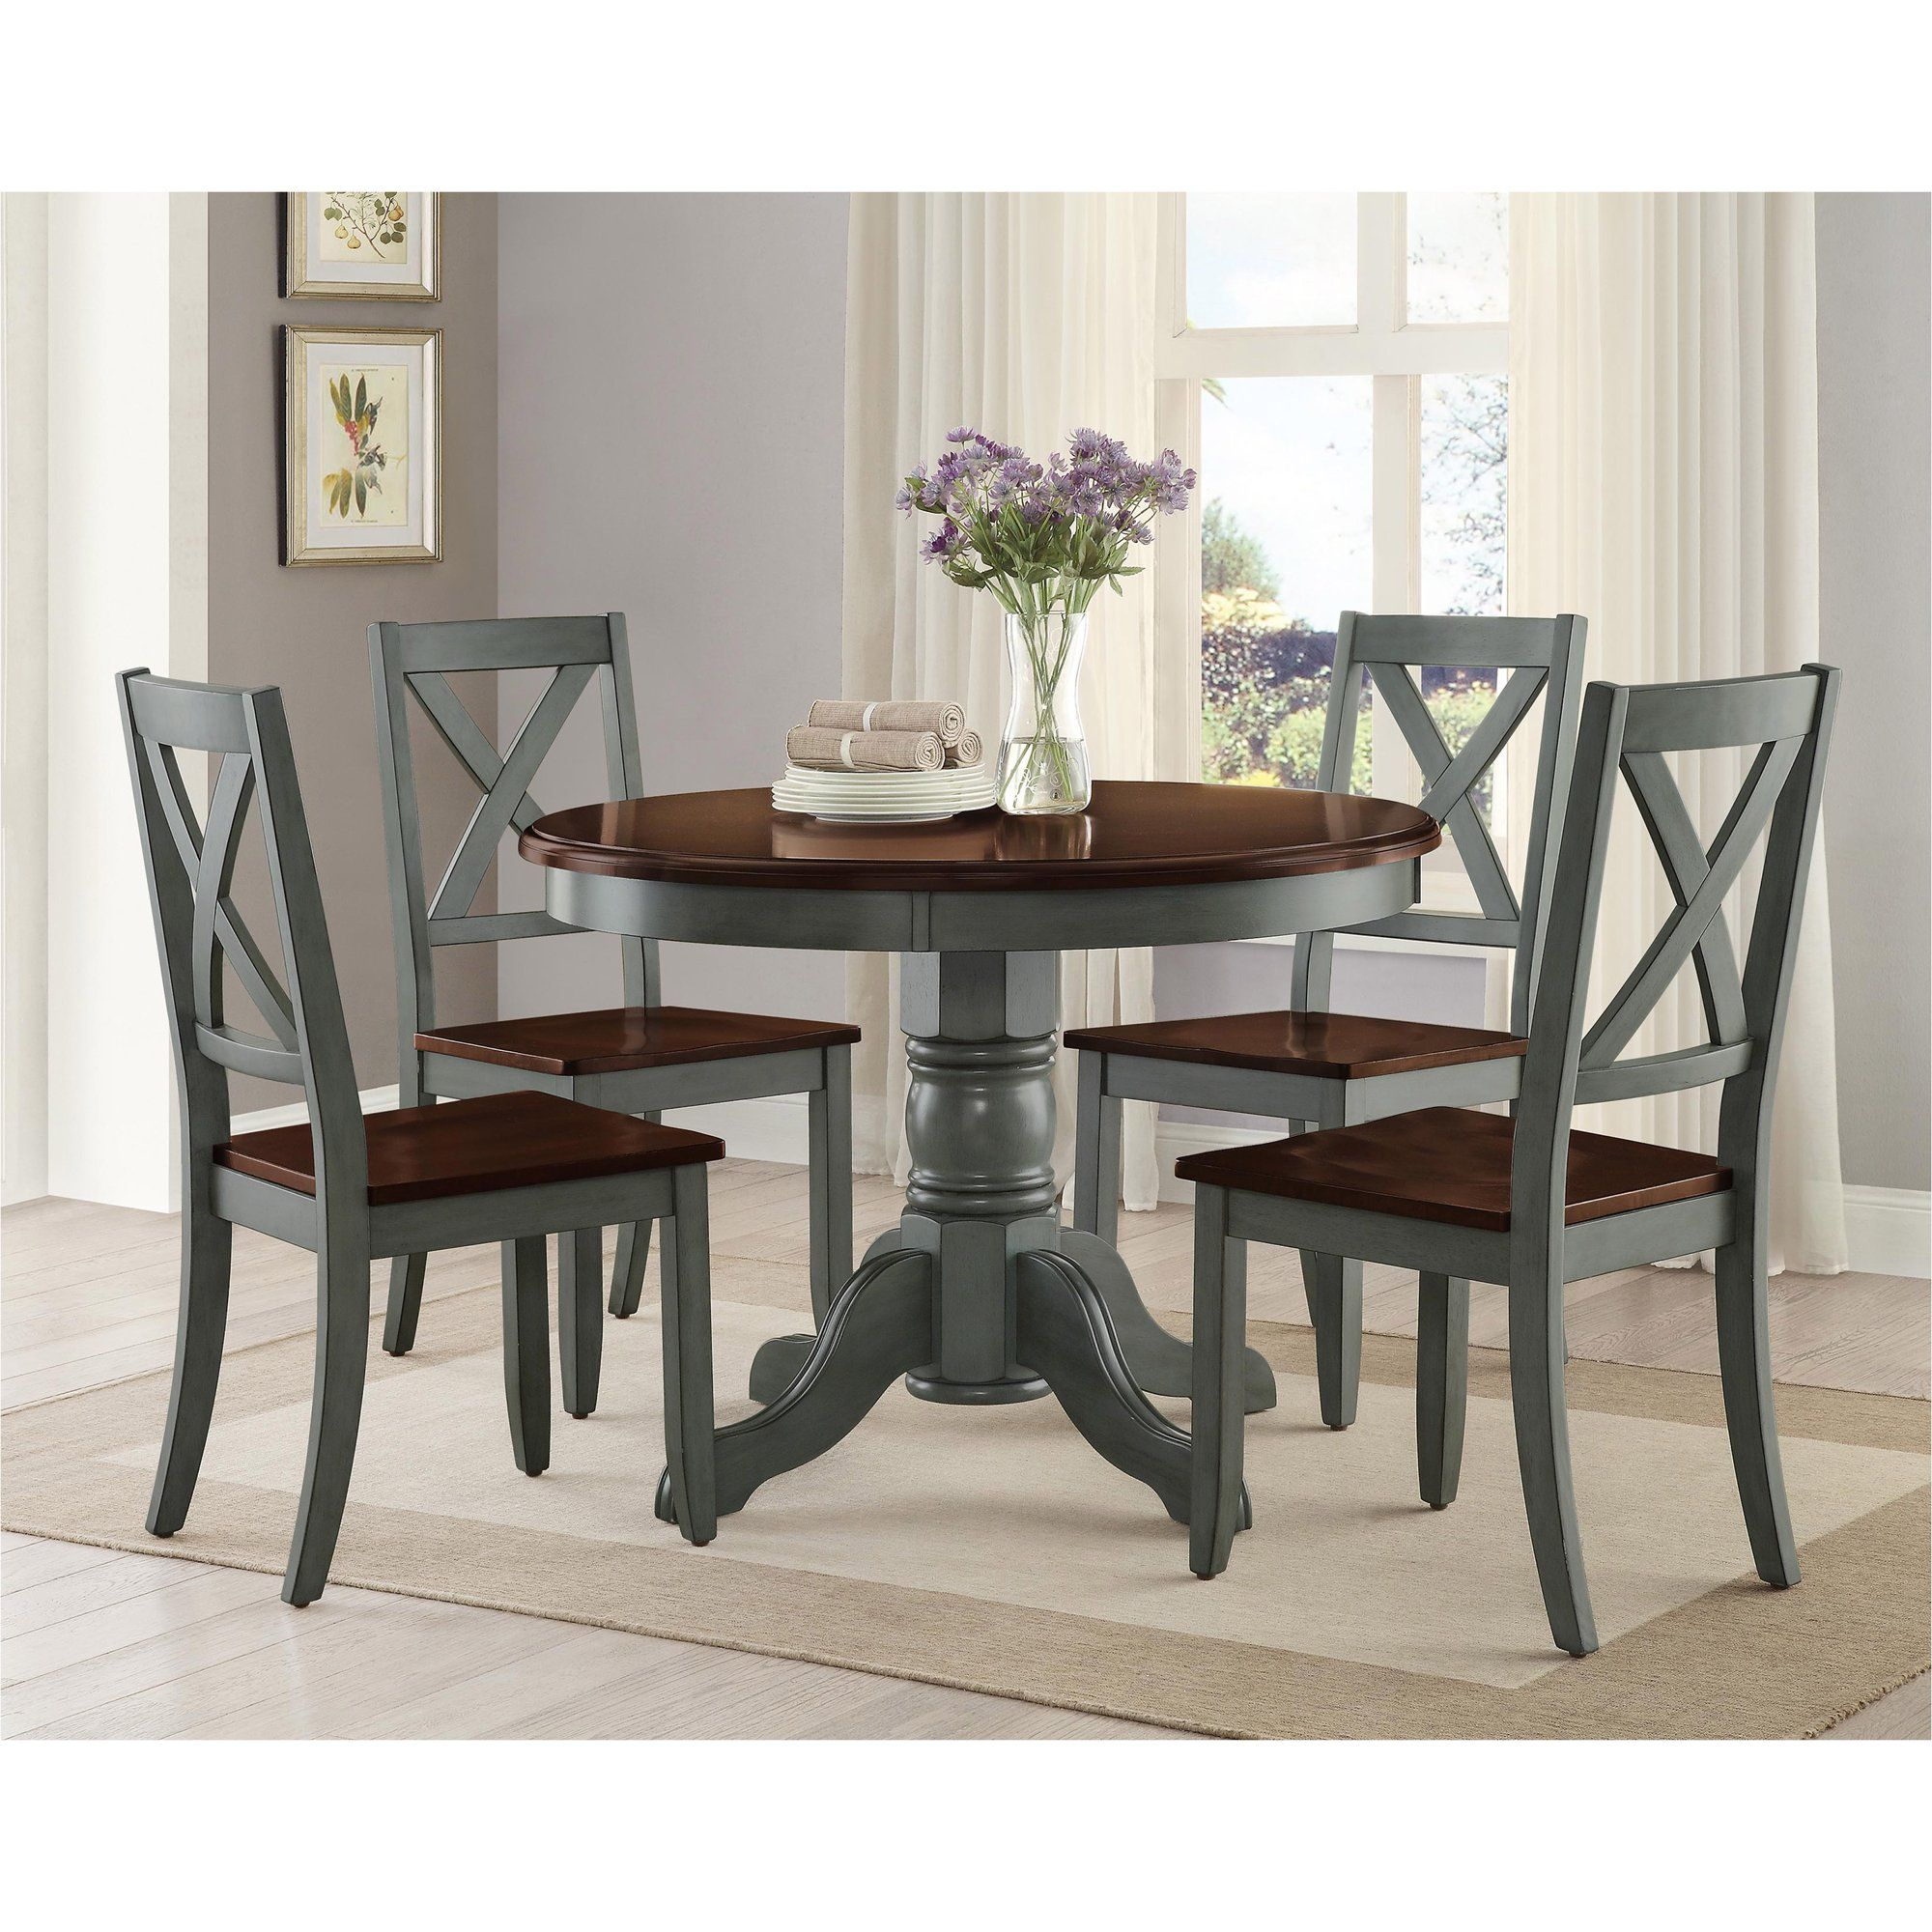 36+ Pedestal dining room table sets Best Choice